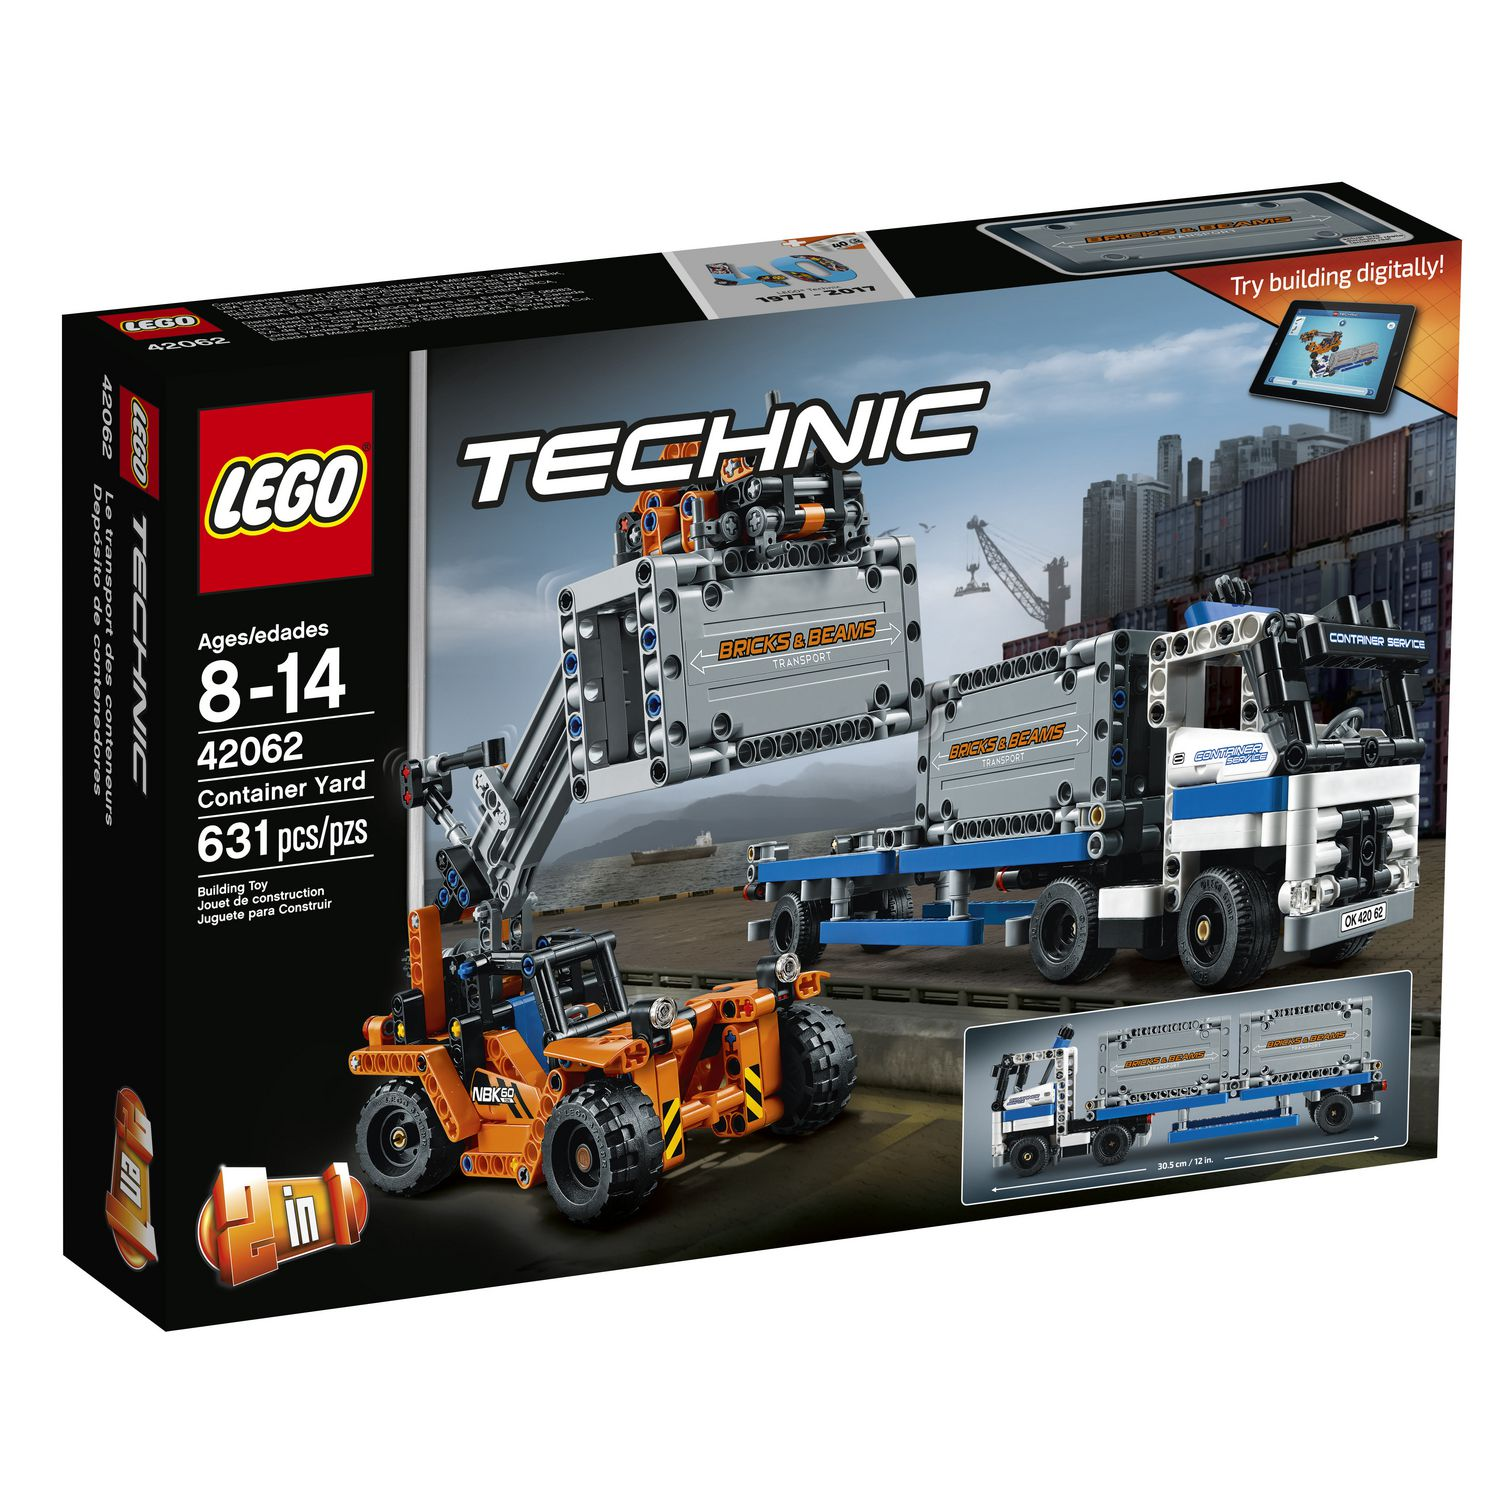 LEGO Technic - Container Yard (42062)